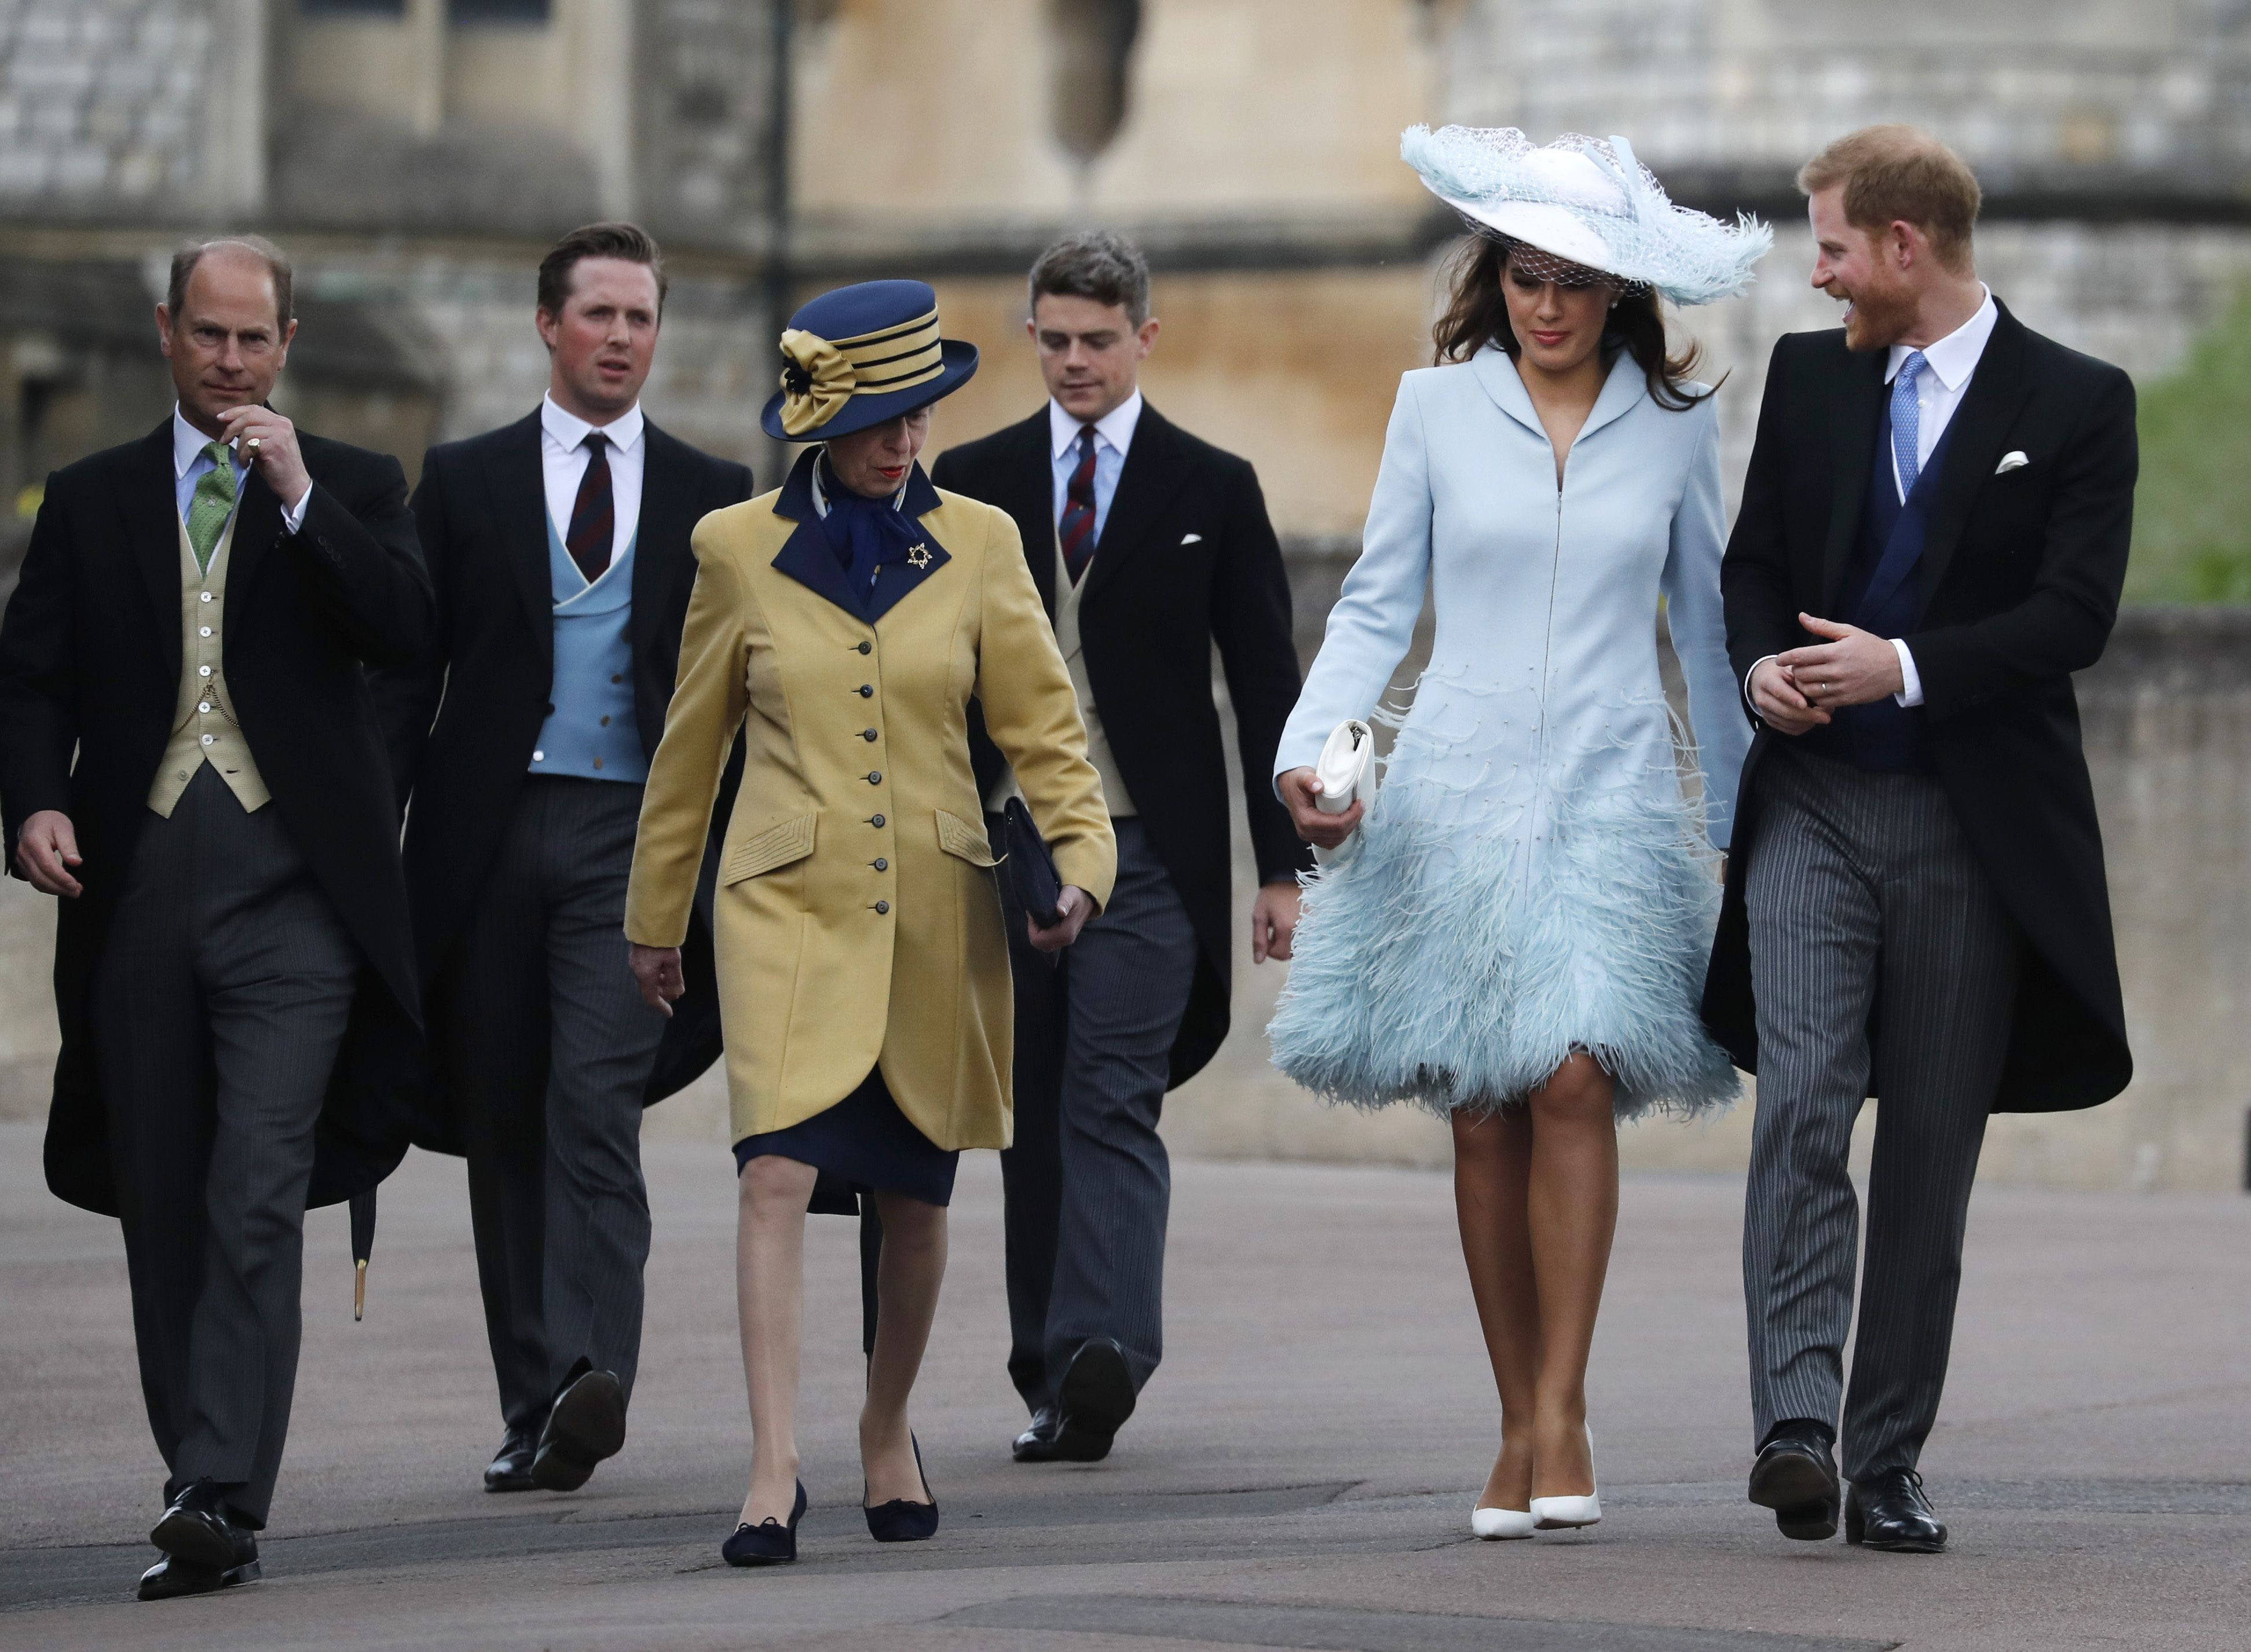 Prince Harry walks to Ella Windsor's wedding alongside the sister-in-law of the bride, Lady Frederick Windsor.